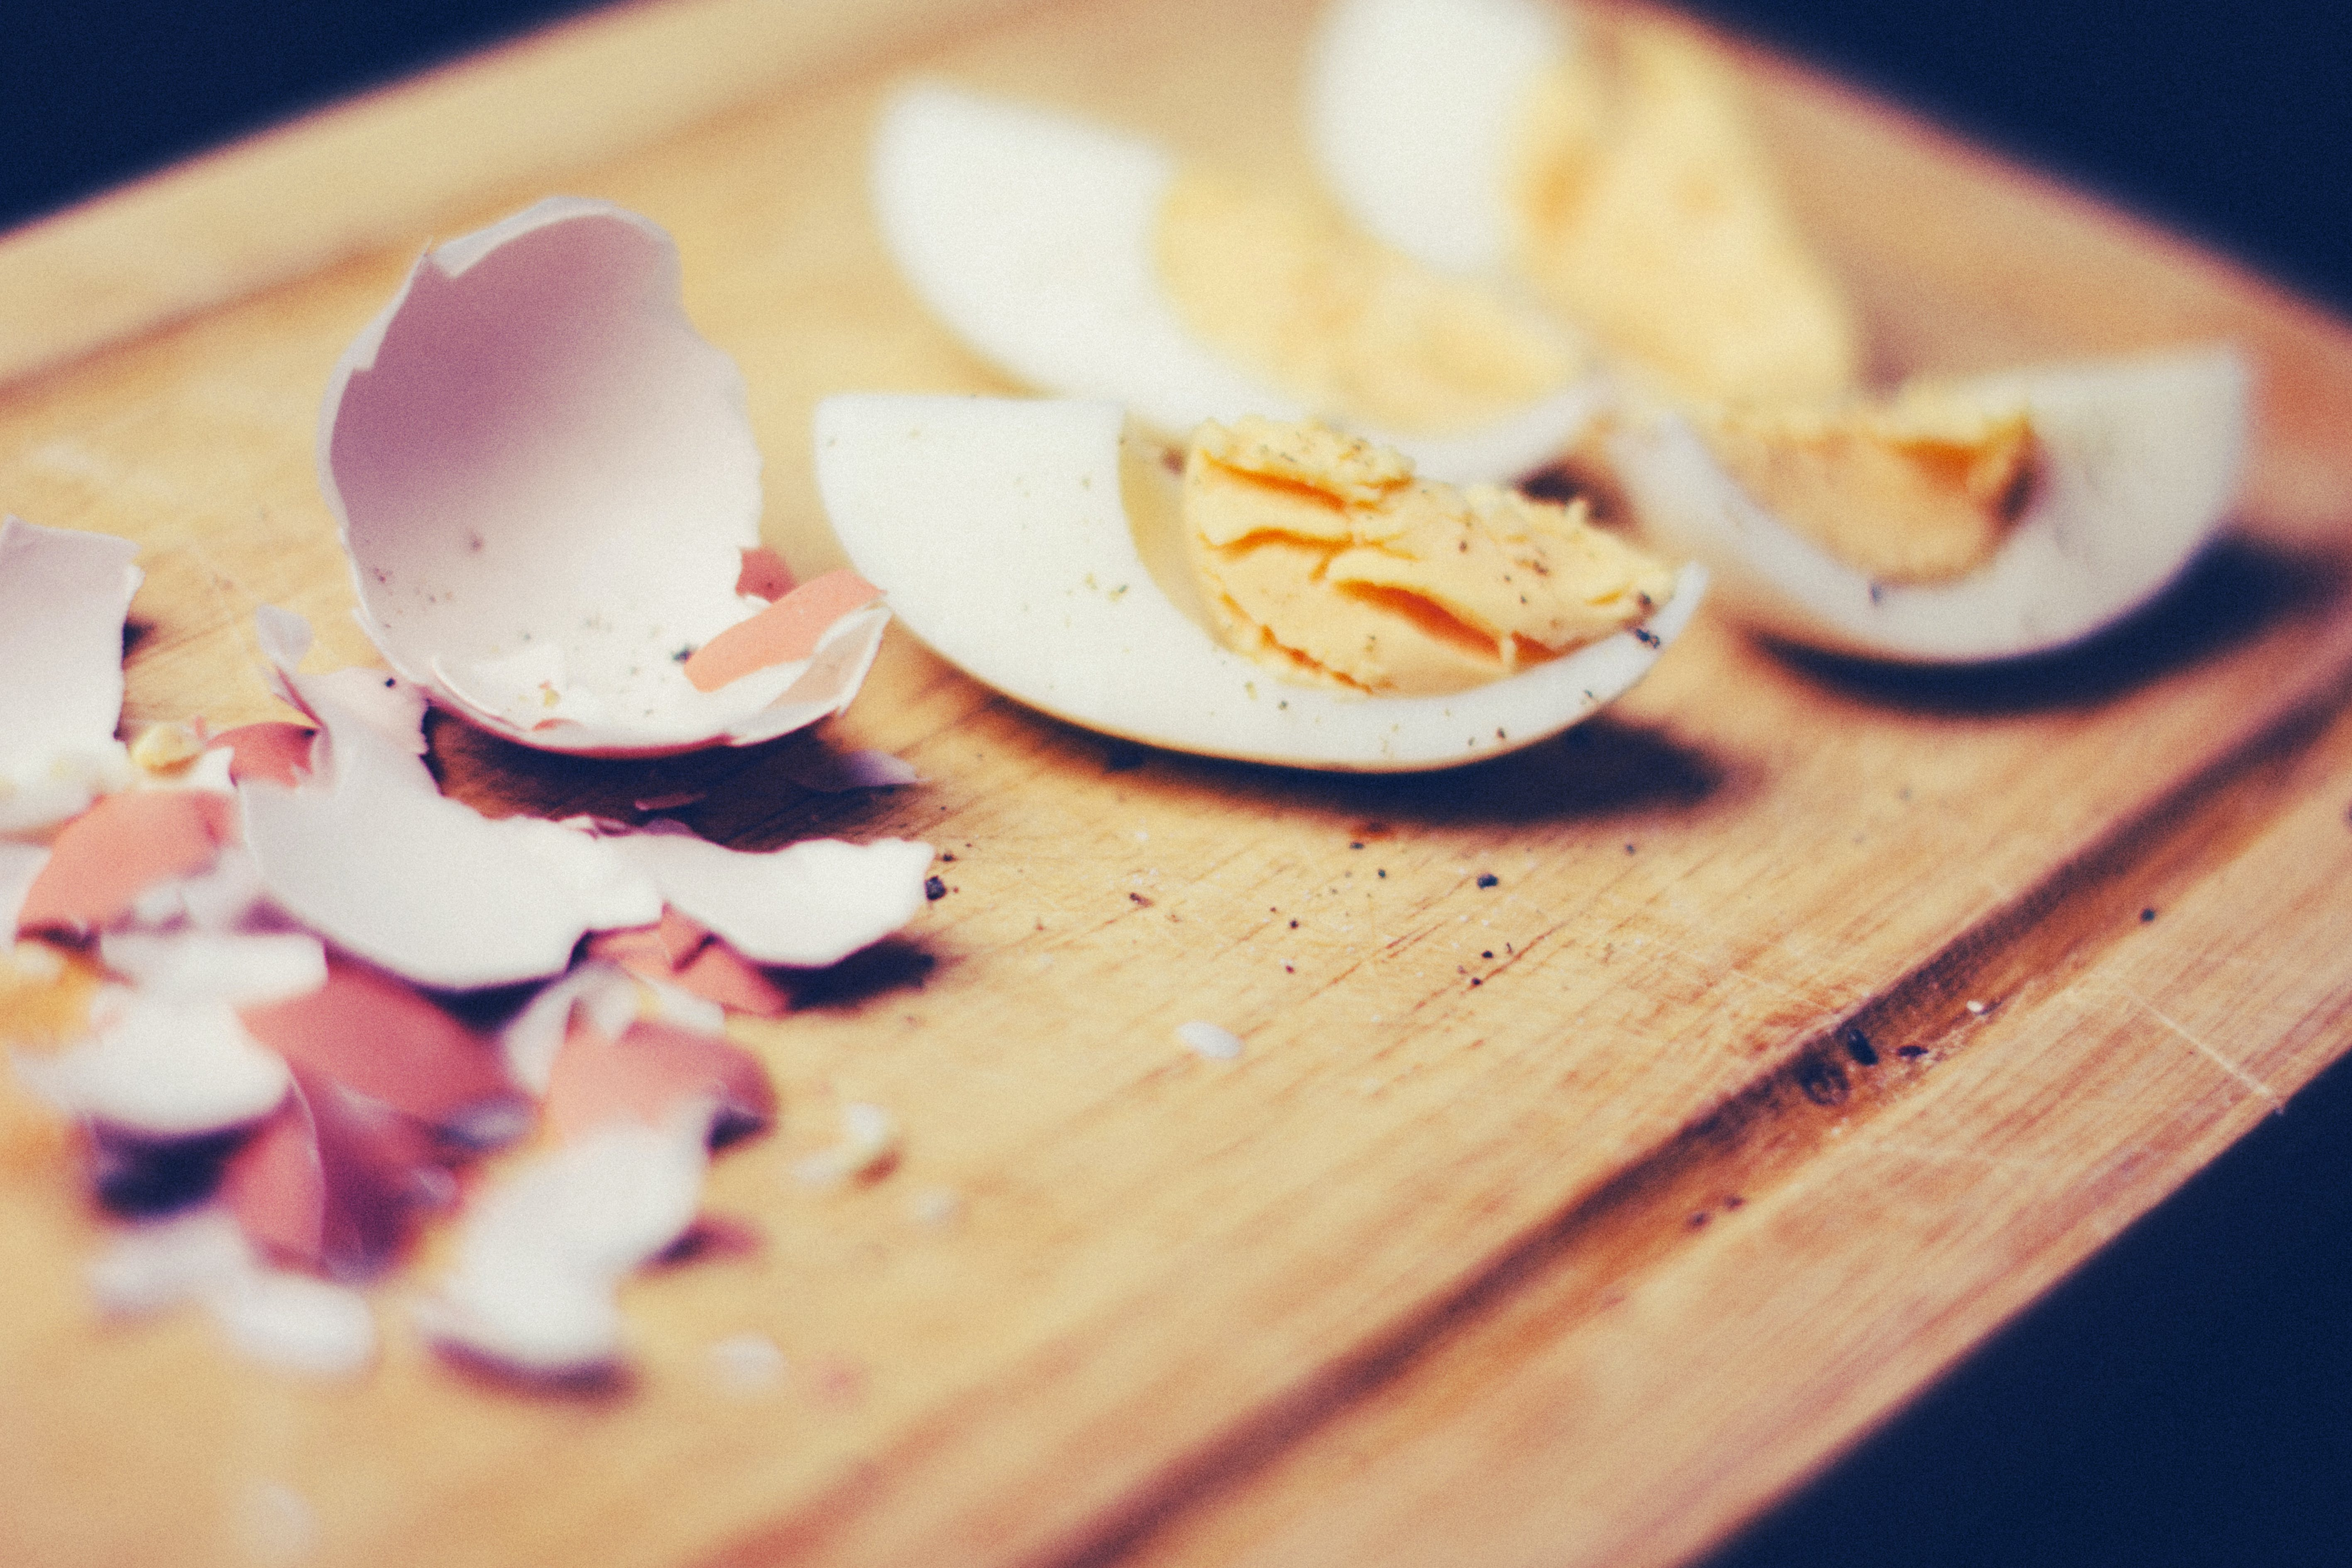 Sliced Egg and Eggshells